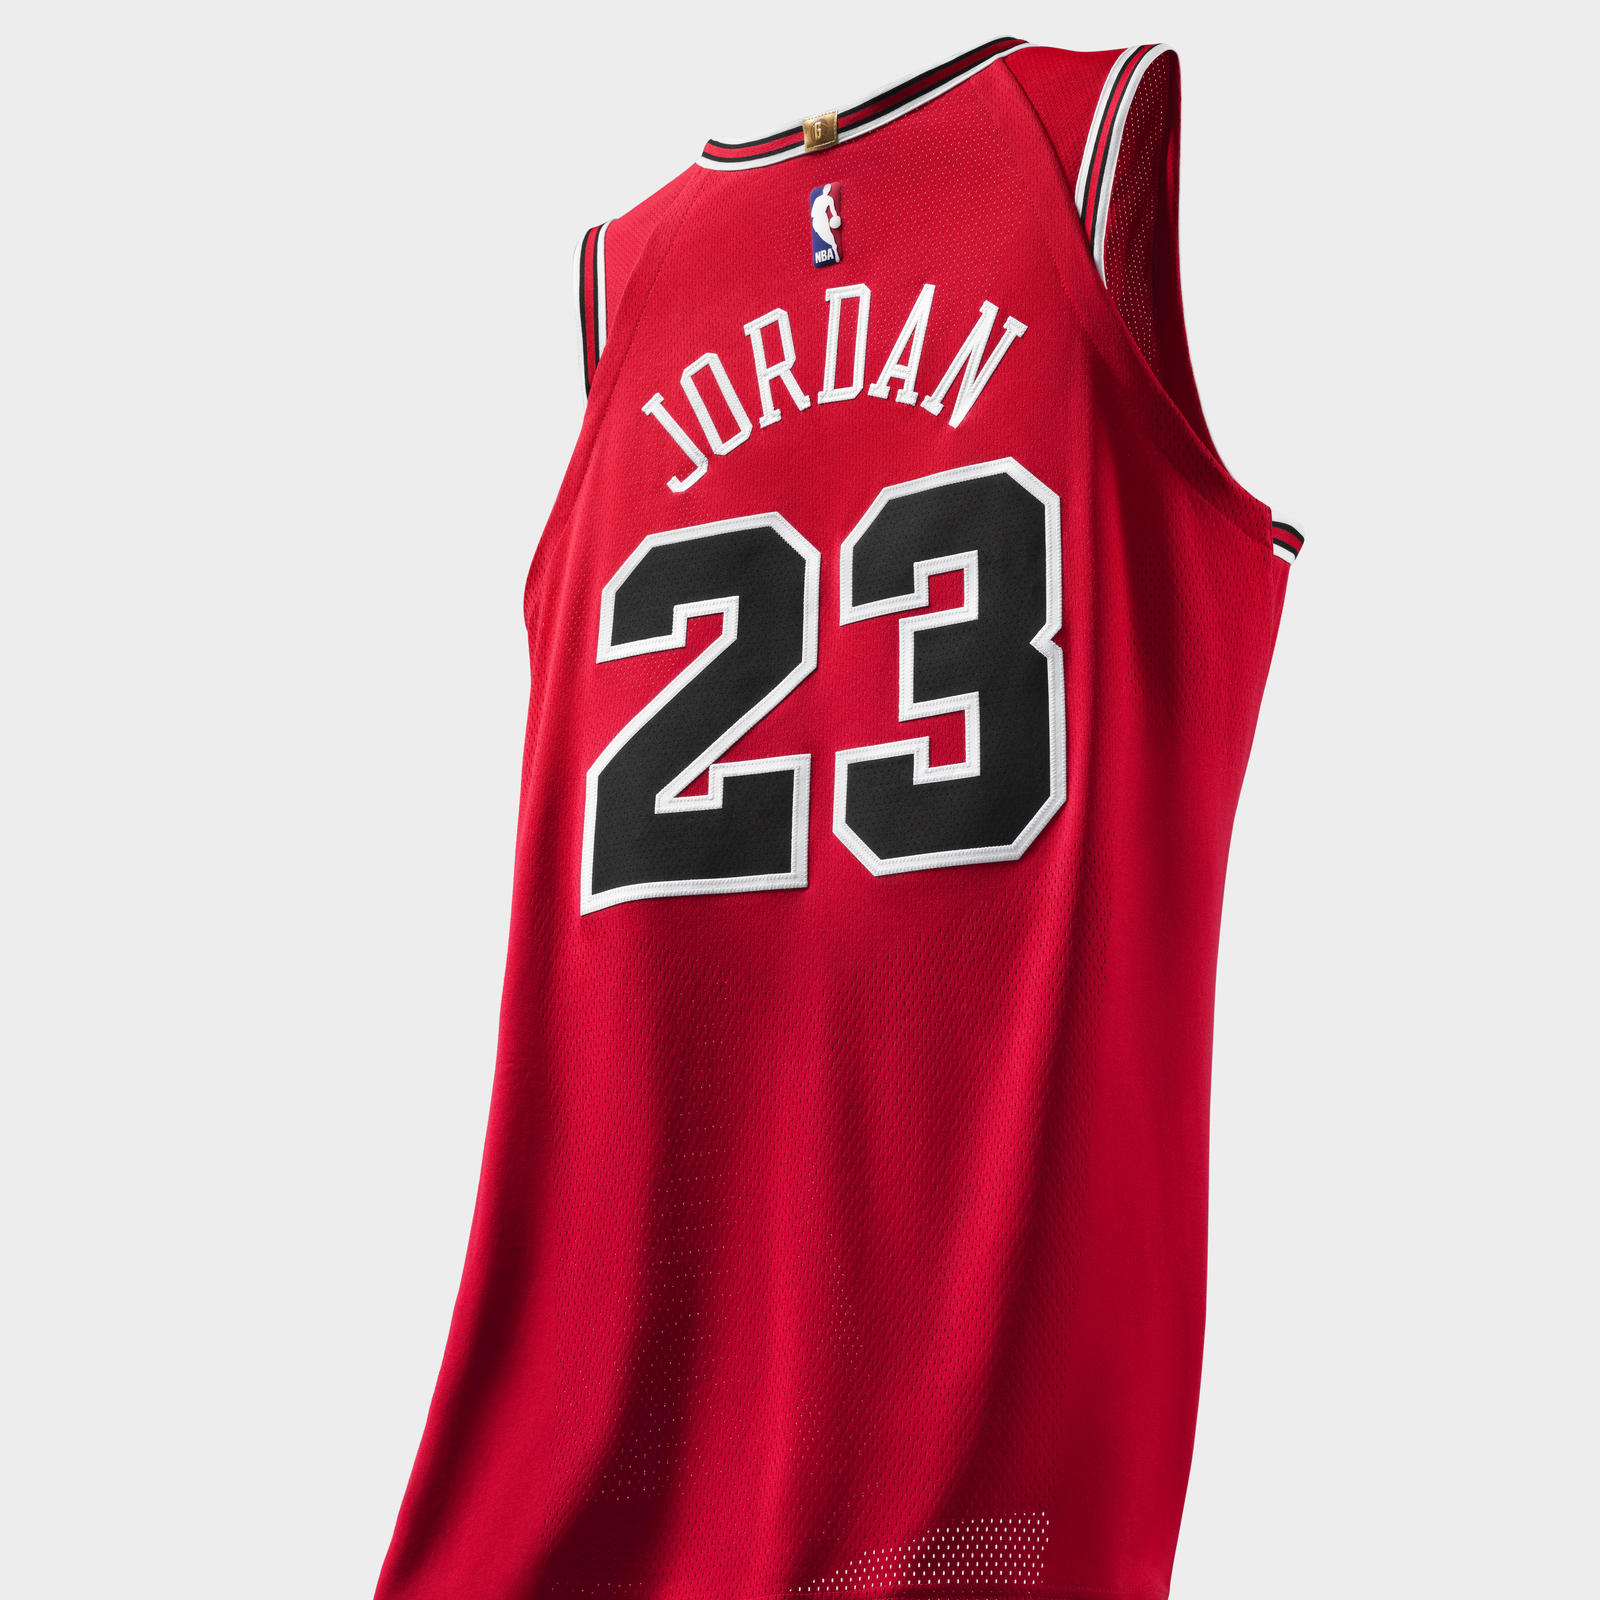 SU18_JD_LastShot_MJordan_Authentic_Jersey_Hero_Back_square_1600.jpg